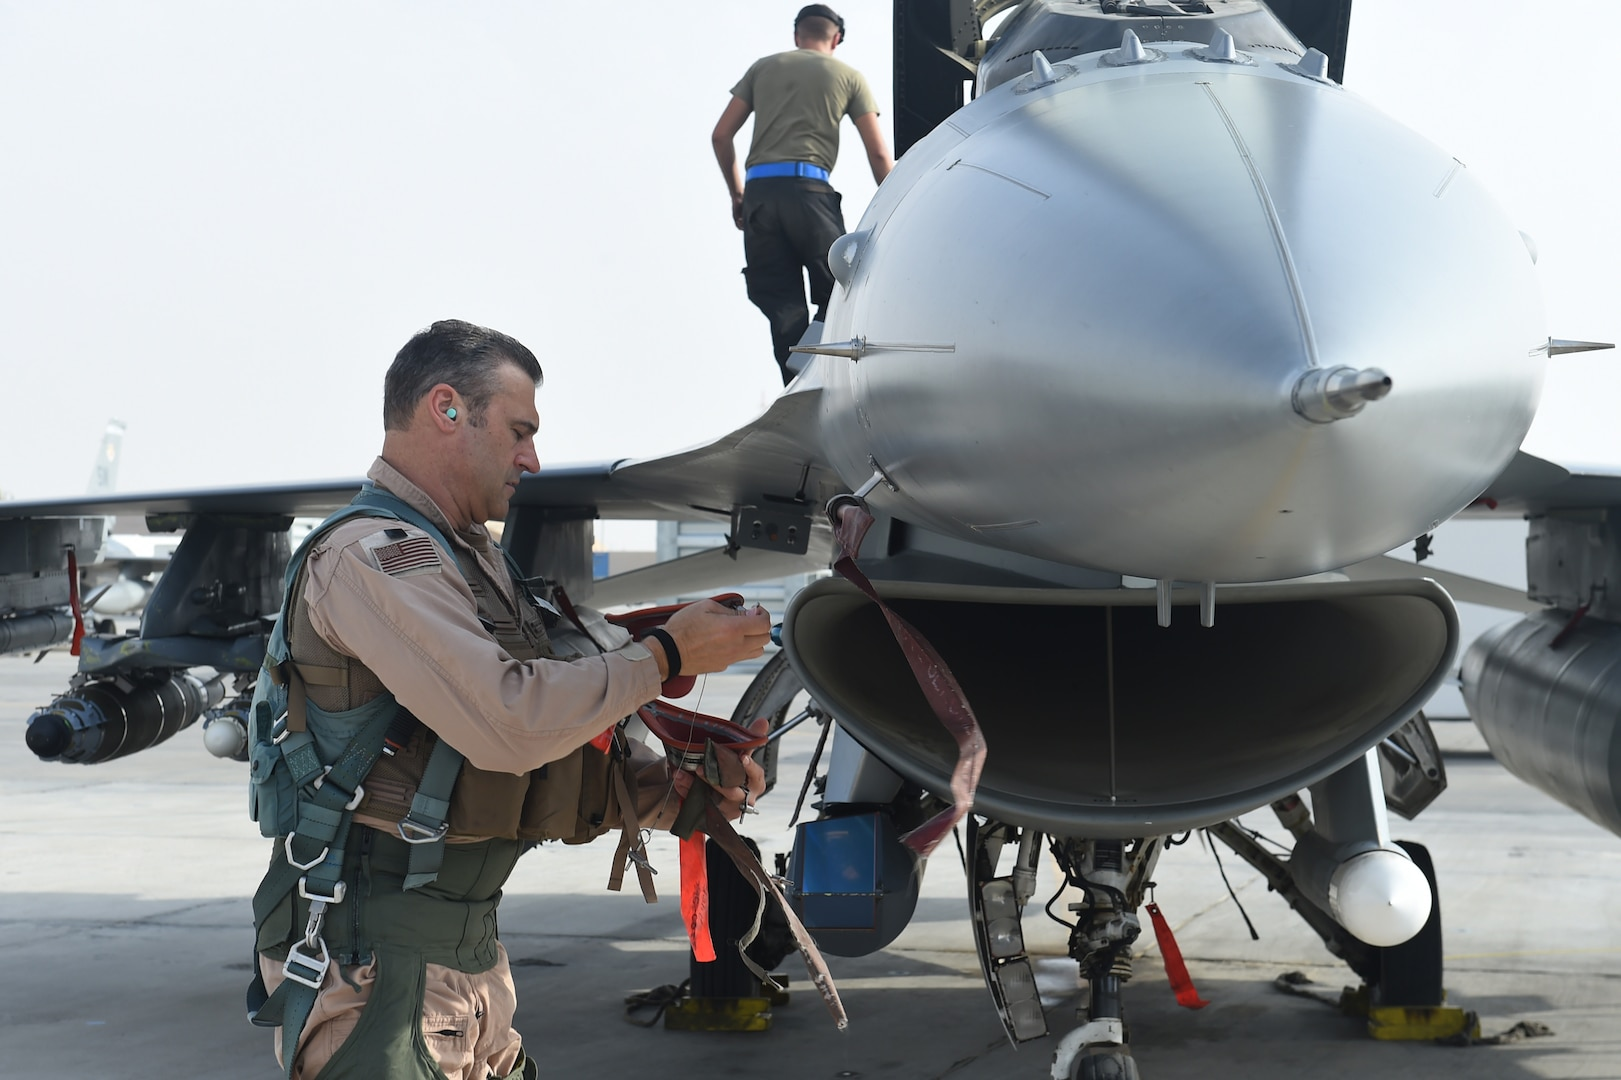 A pilot and crew chief prepare an F-16 Fighting Falcon for take off.